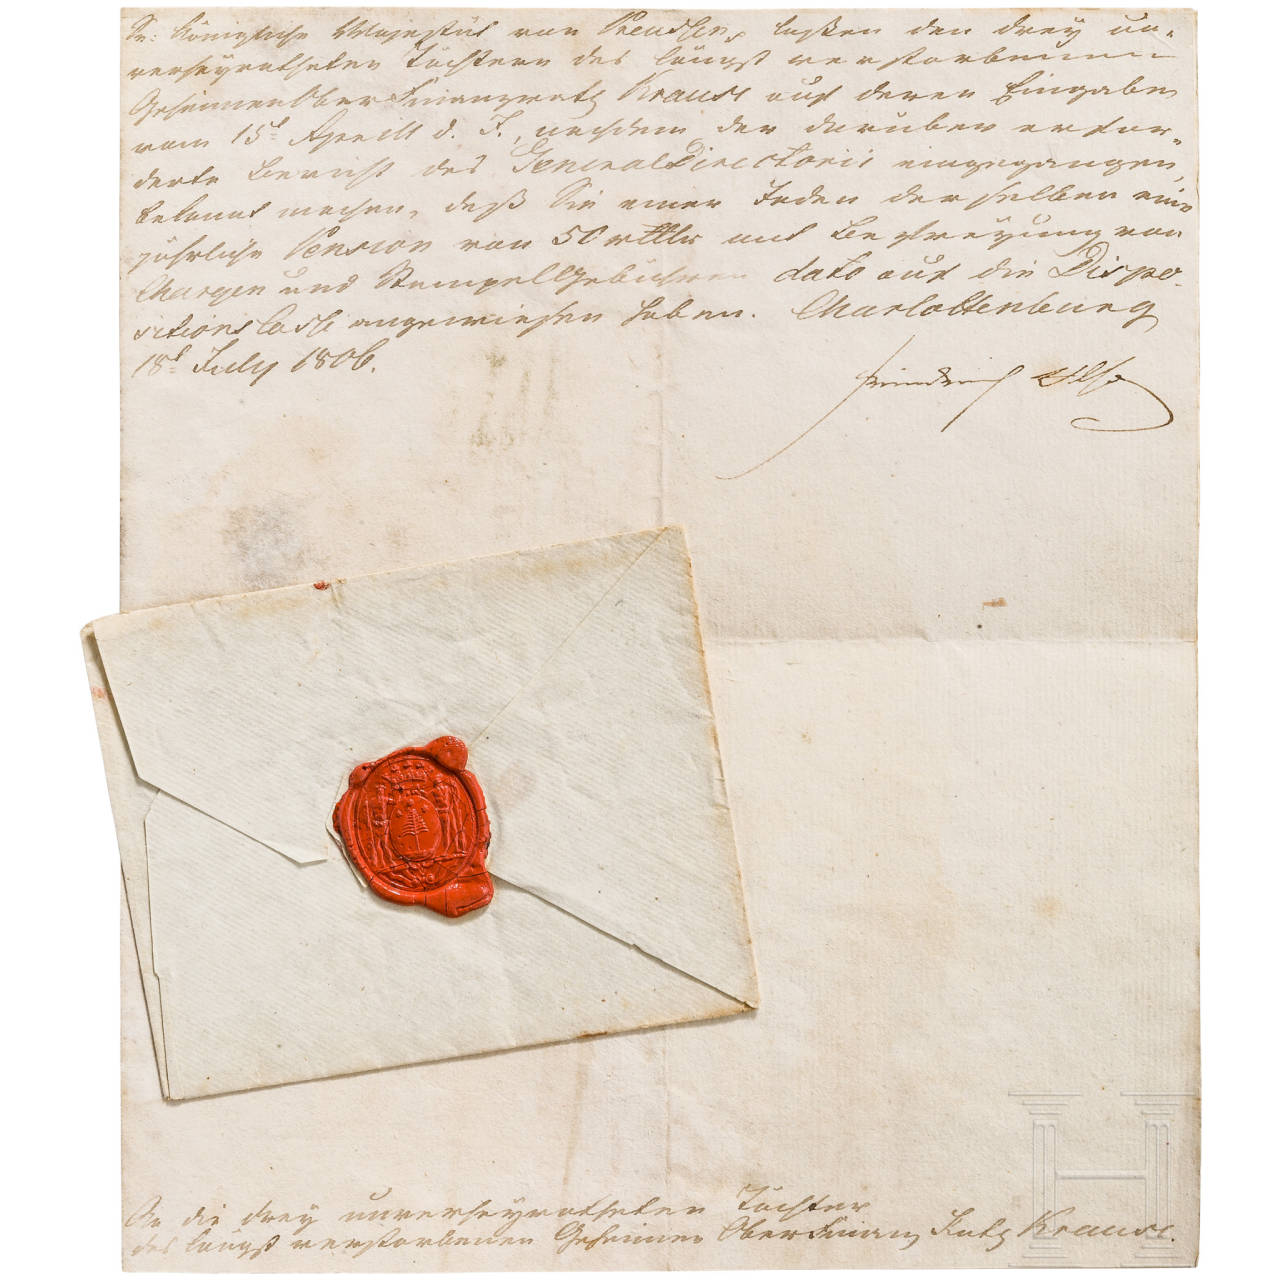 King Frederick William III of Prussia - personally signed letter of 15 July 1806